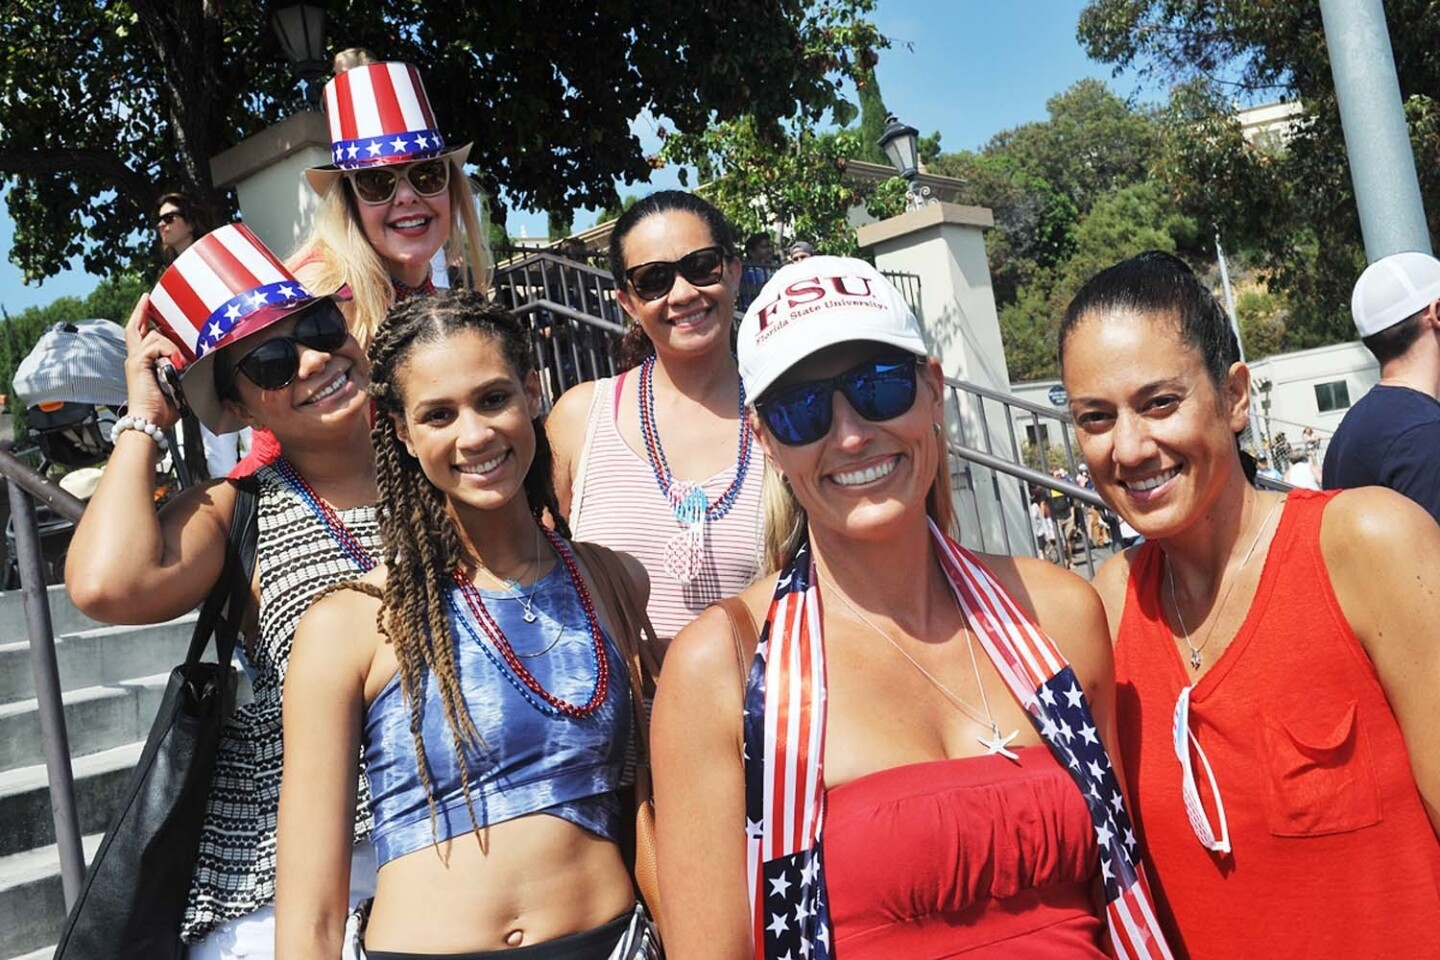 Locals caught the USA vs. Canada men's rugby game at the University of San Diego, which qualified USA for the Rugby World Cup, on Saturday, July 1, 2017. (Rick Nocon)